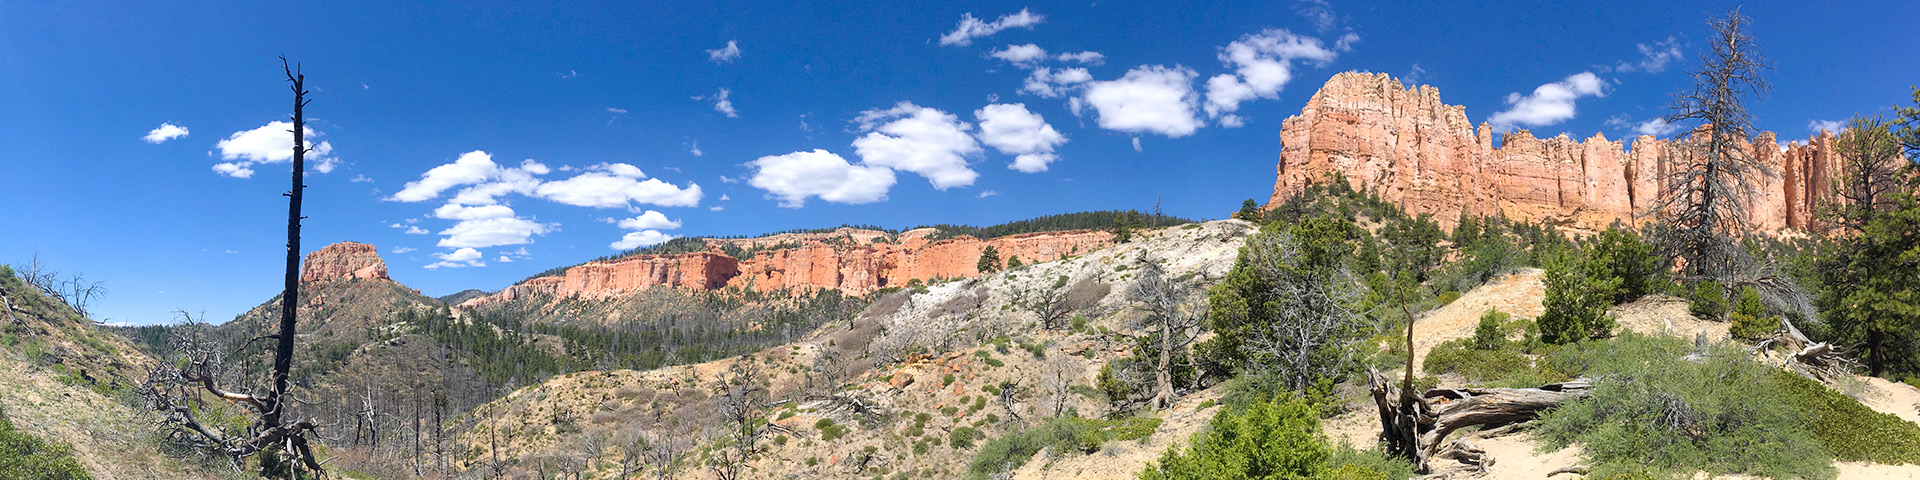 Panorama from the Swamp Canyon Loop hike in Bryce Canyon National Park, Utah